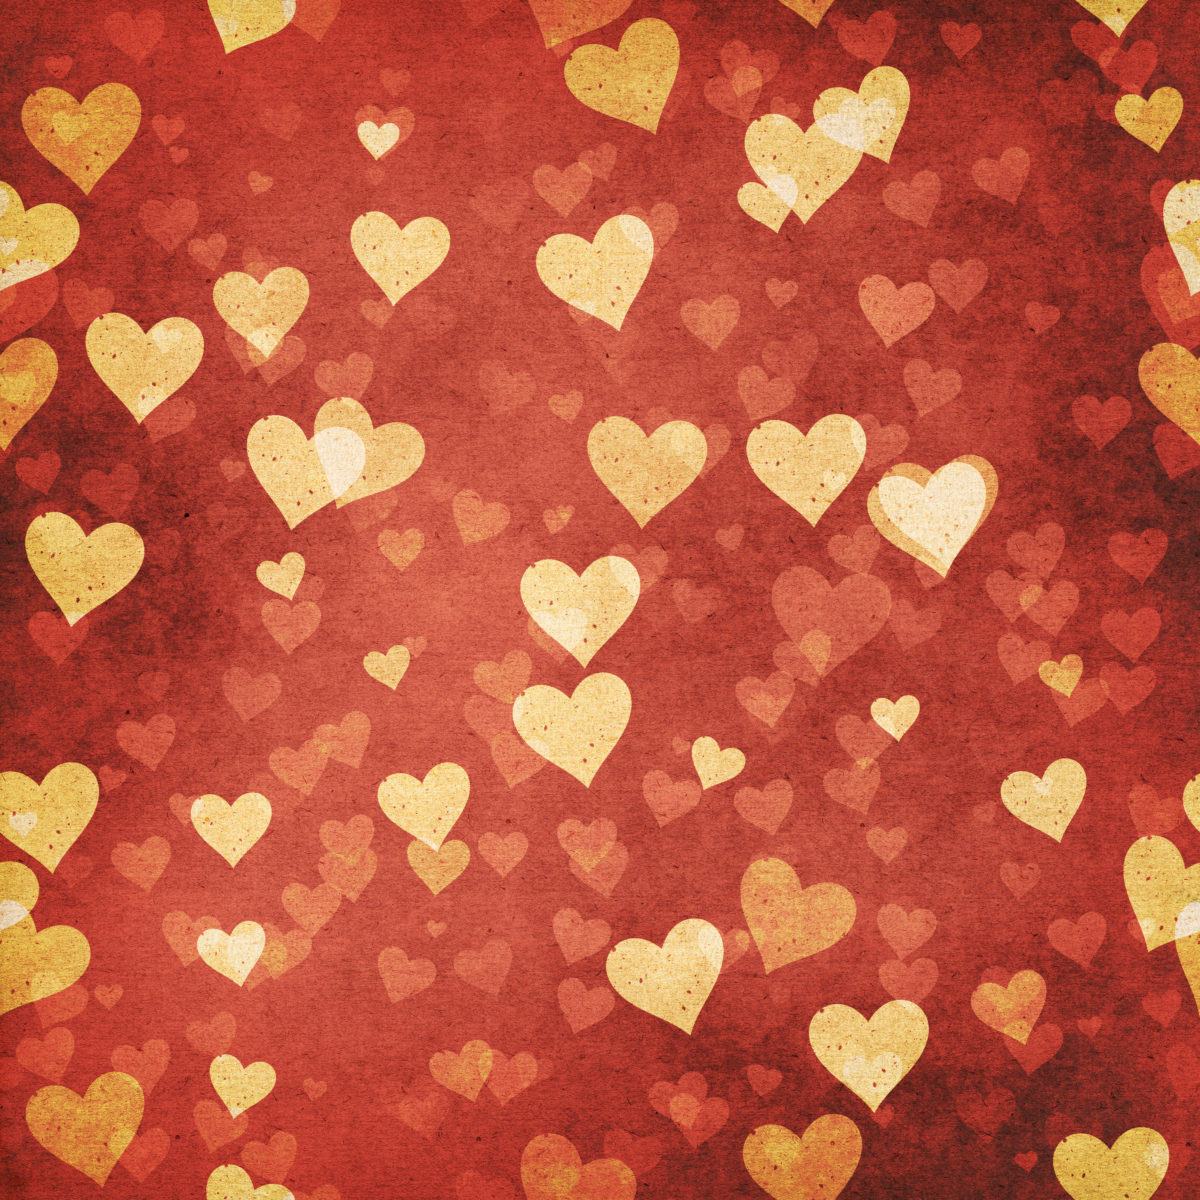 Abstract Grungy Valentine Background — free image from Canstockphoto © Can Stock Photo / tolokonov